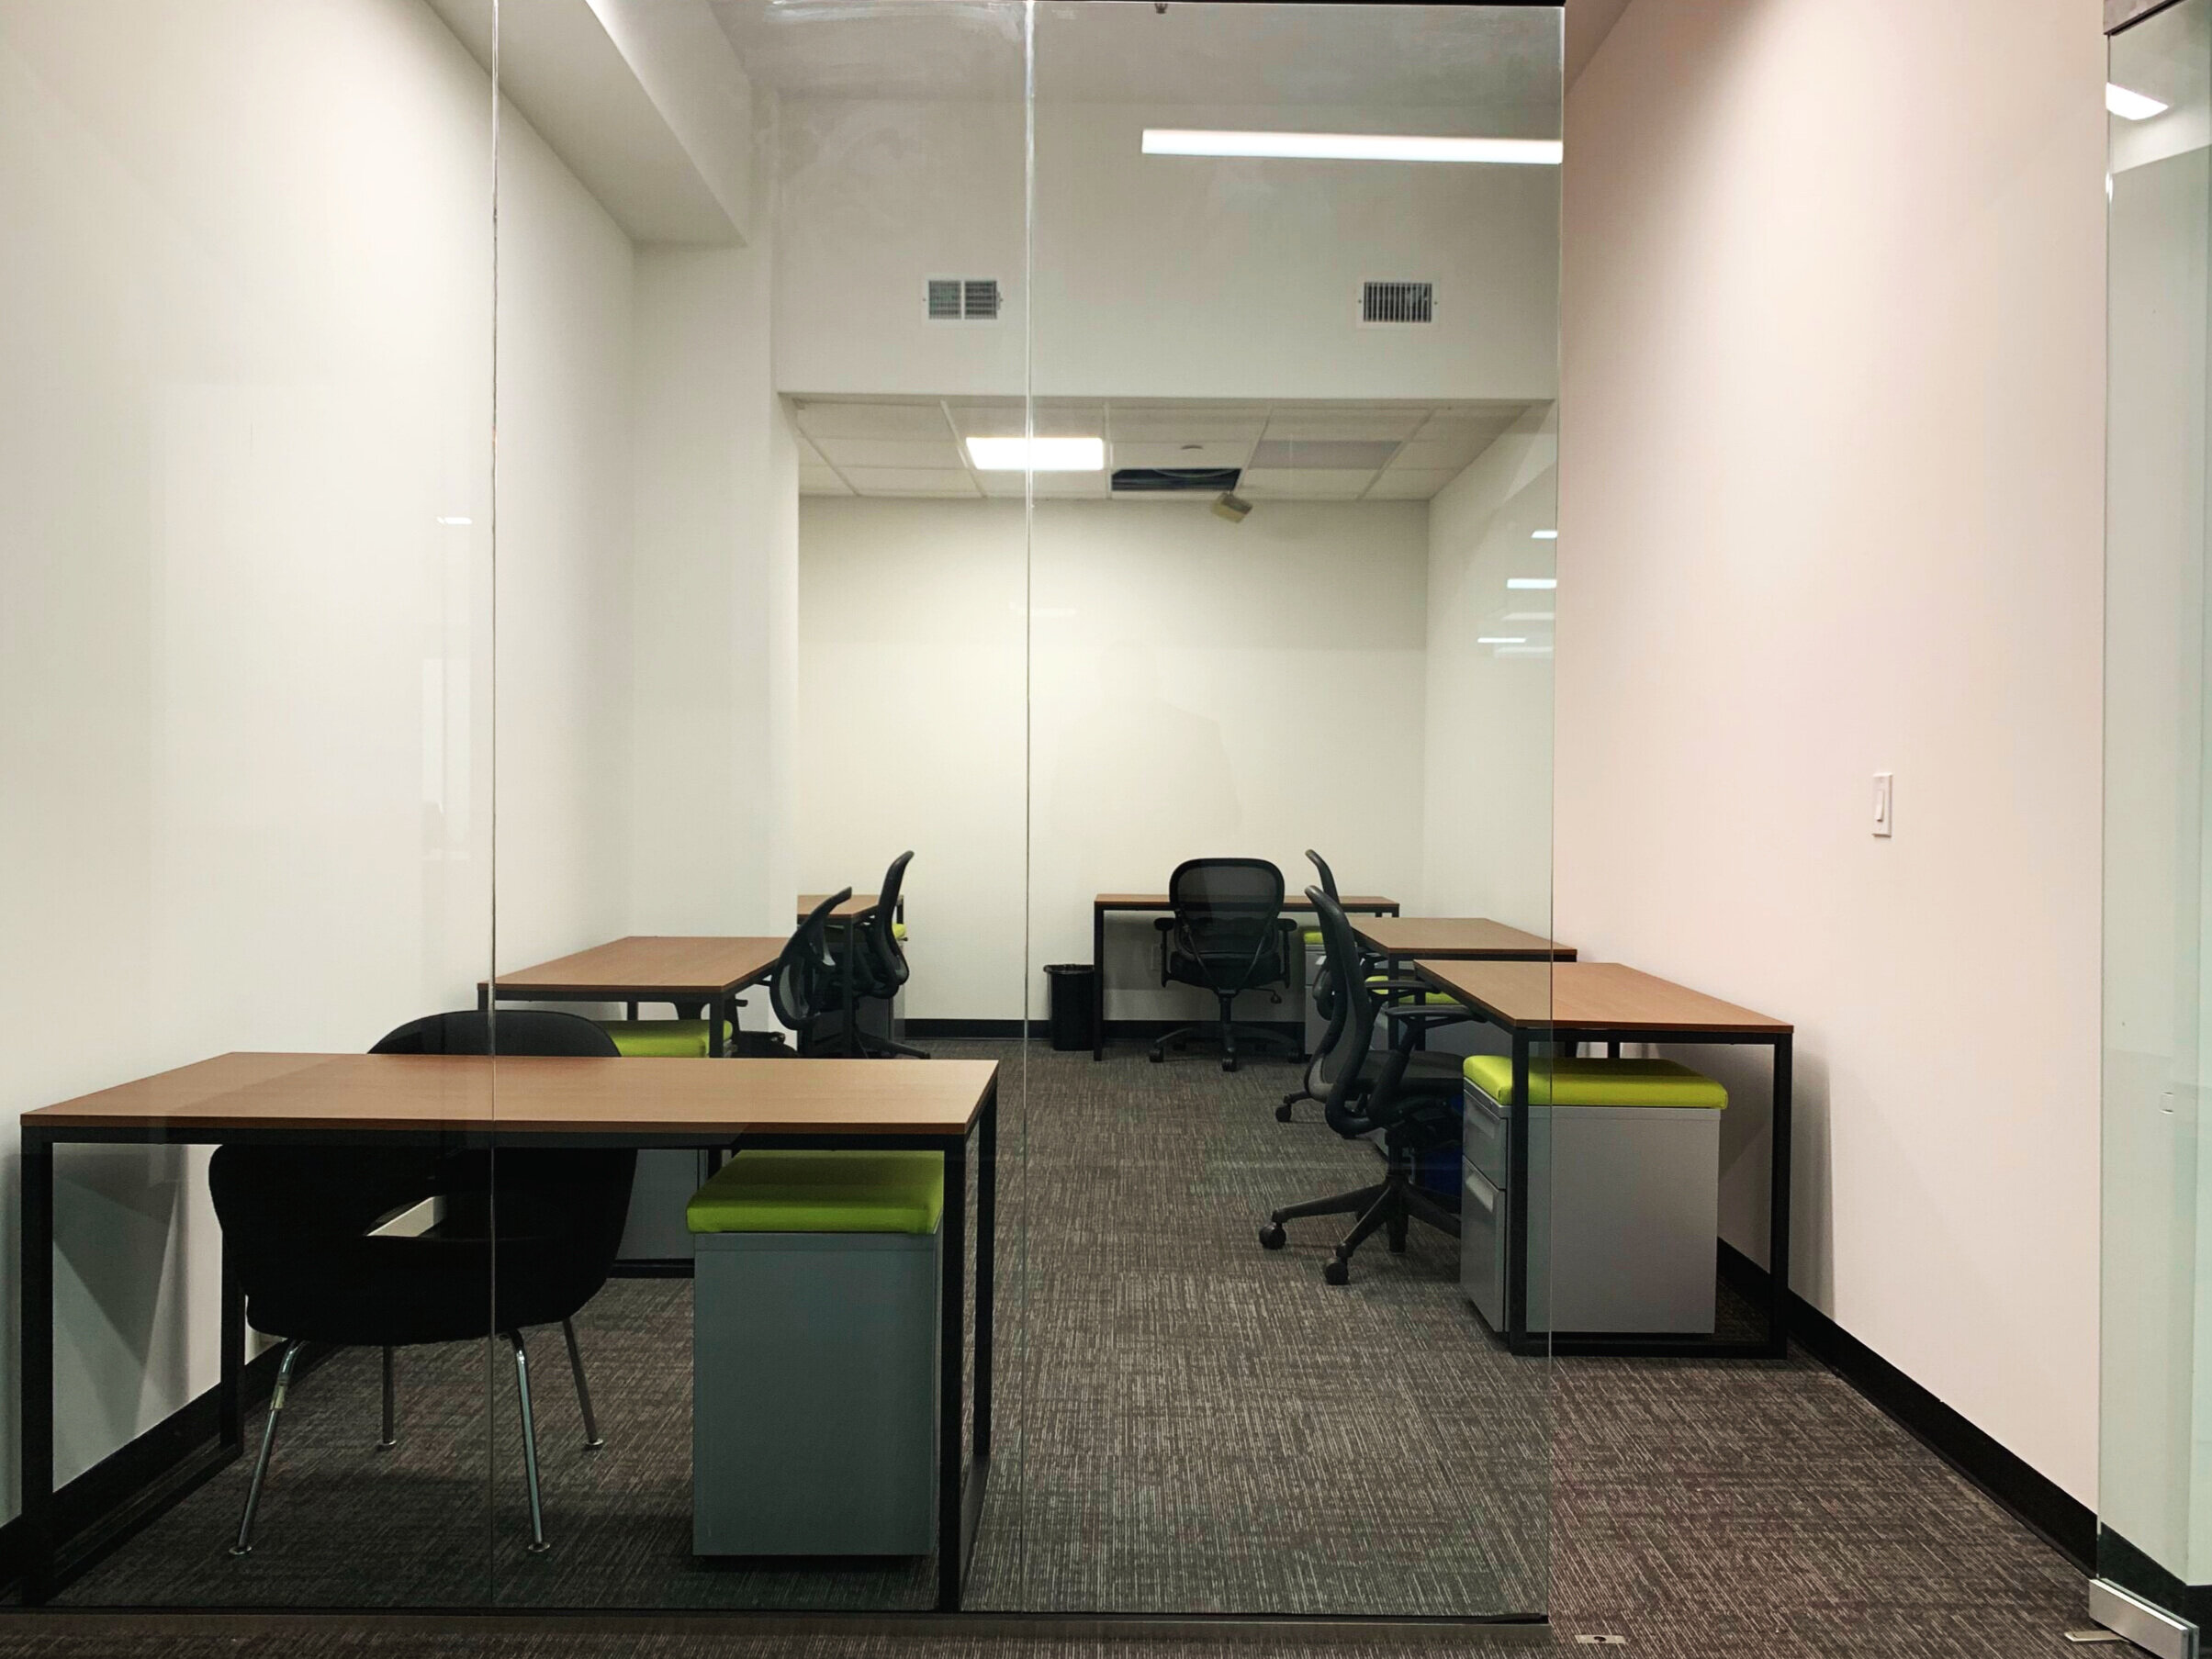 Suite 501: 6-7 People - A quiet office perfect for all types of companies that need lots of privacy for productivity.